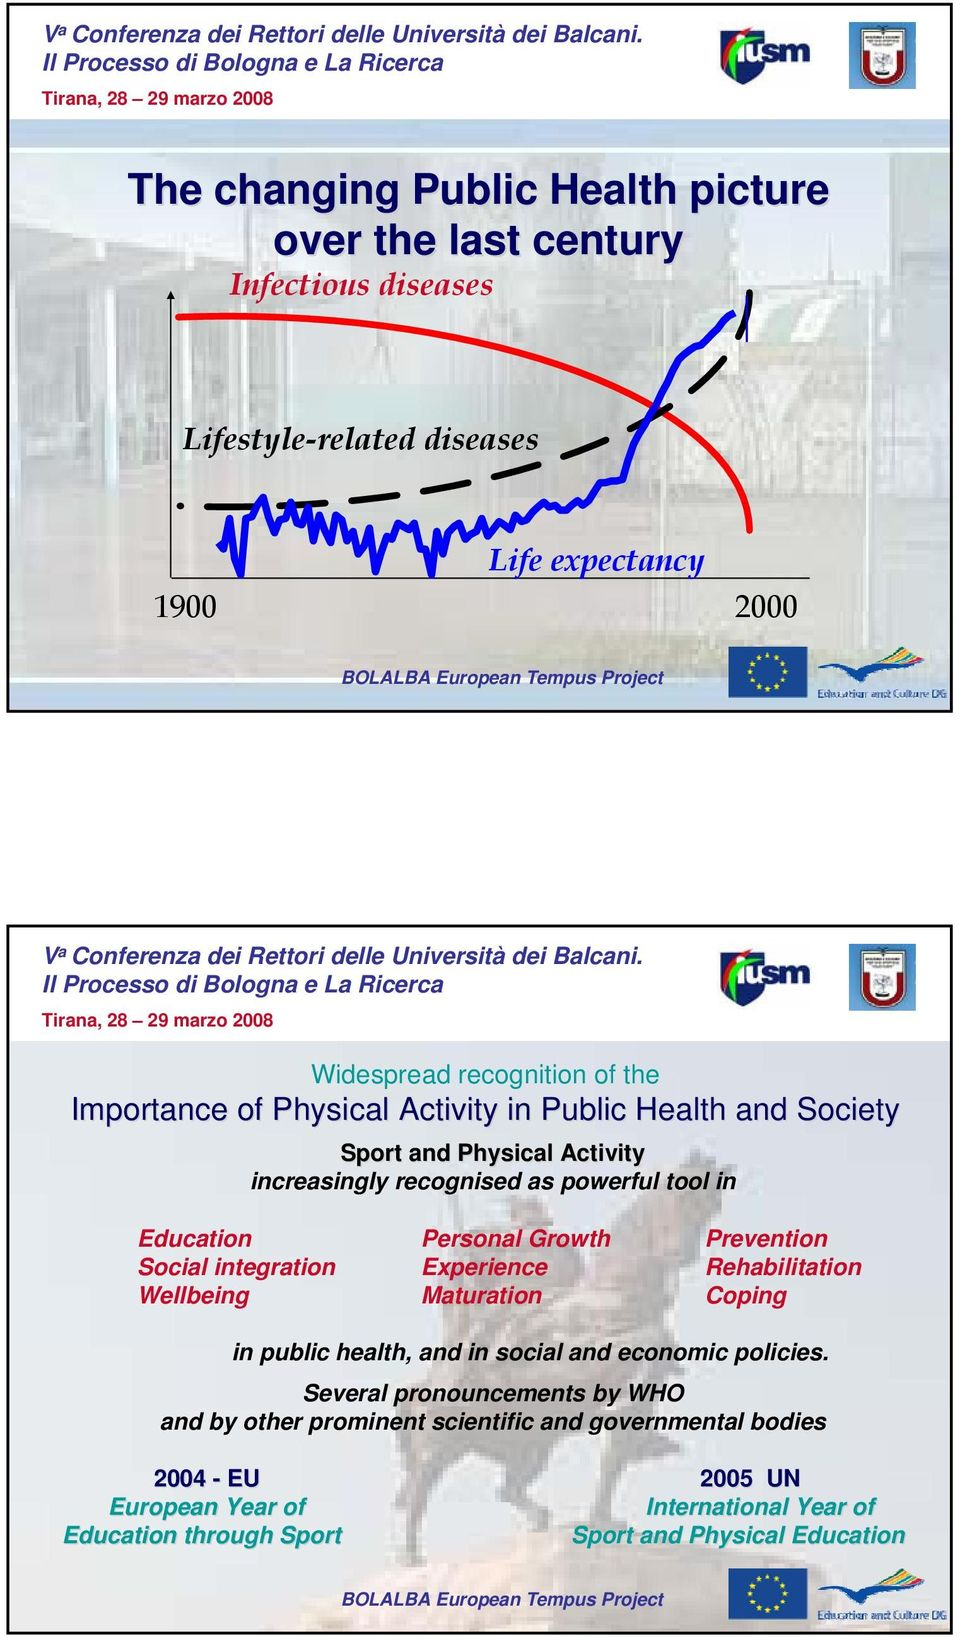 Prevention Social integration Experience Rehabilitation Wellbeing Maturation Coping in public health, and in social and economic policies.